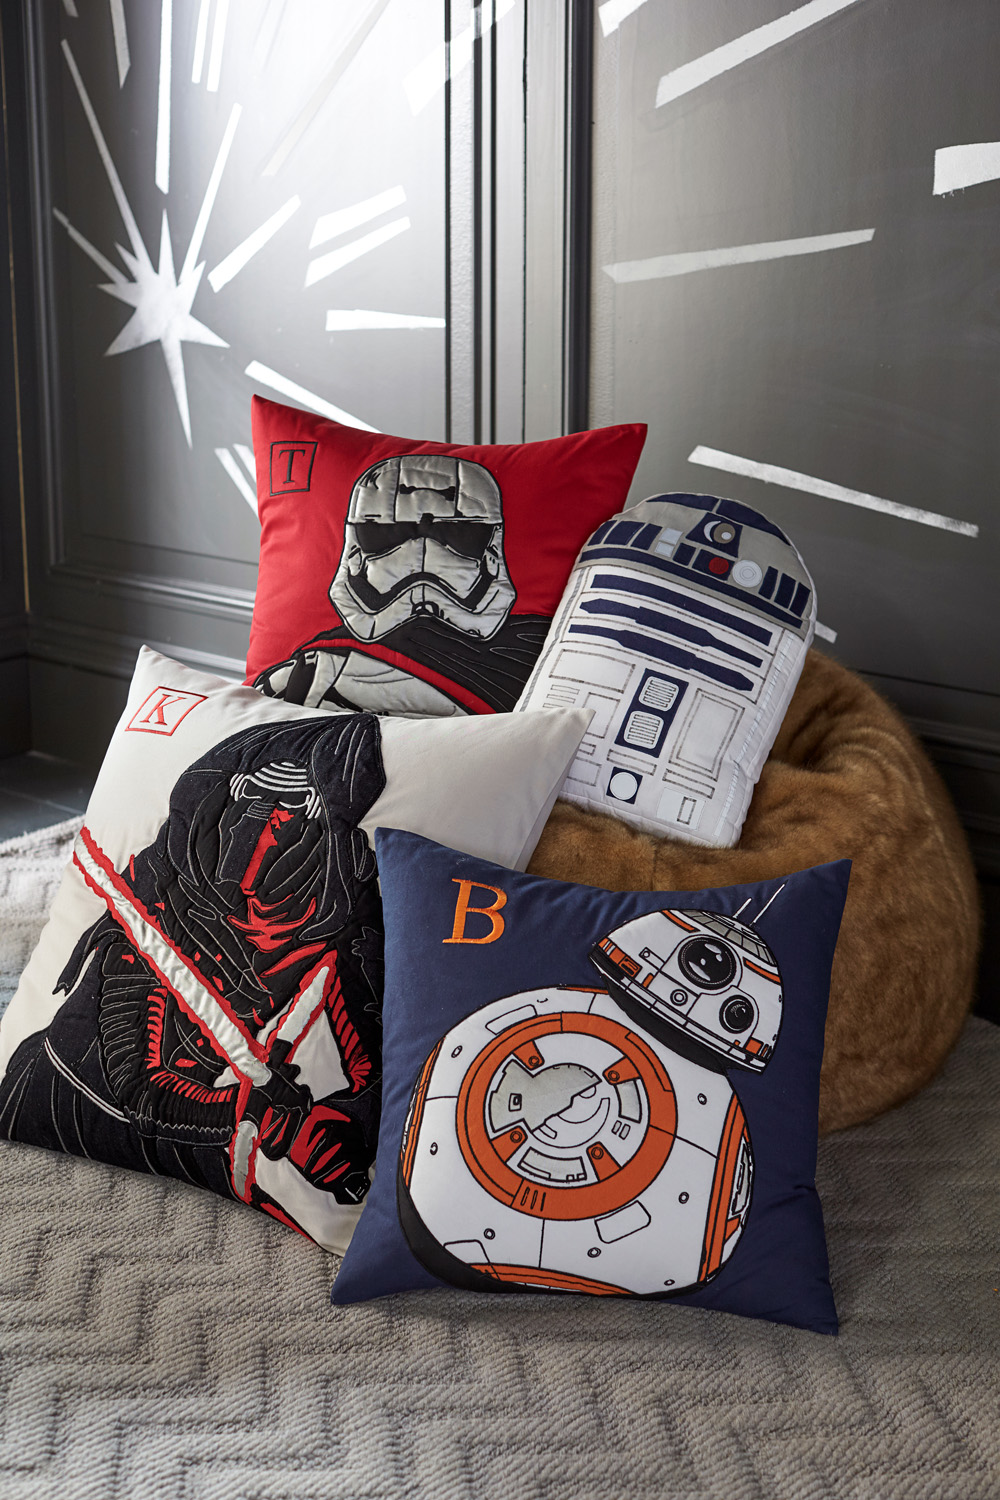 Pottery Barn Star Wars Collection   Preview    StarWars com Pottery Barn Star Wars pillows